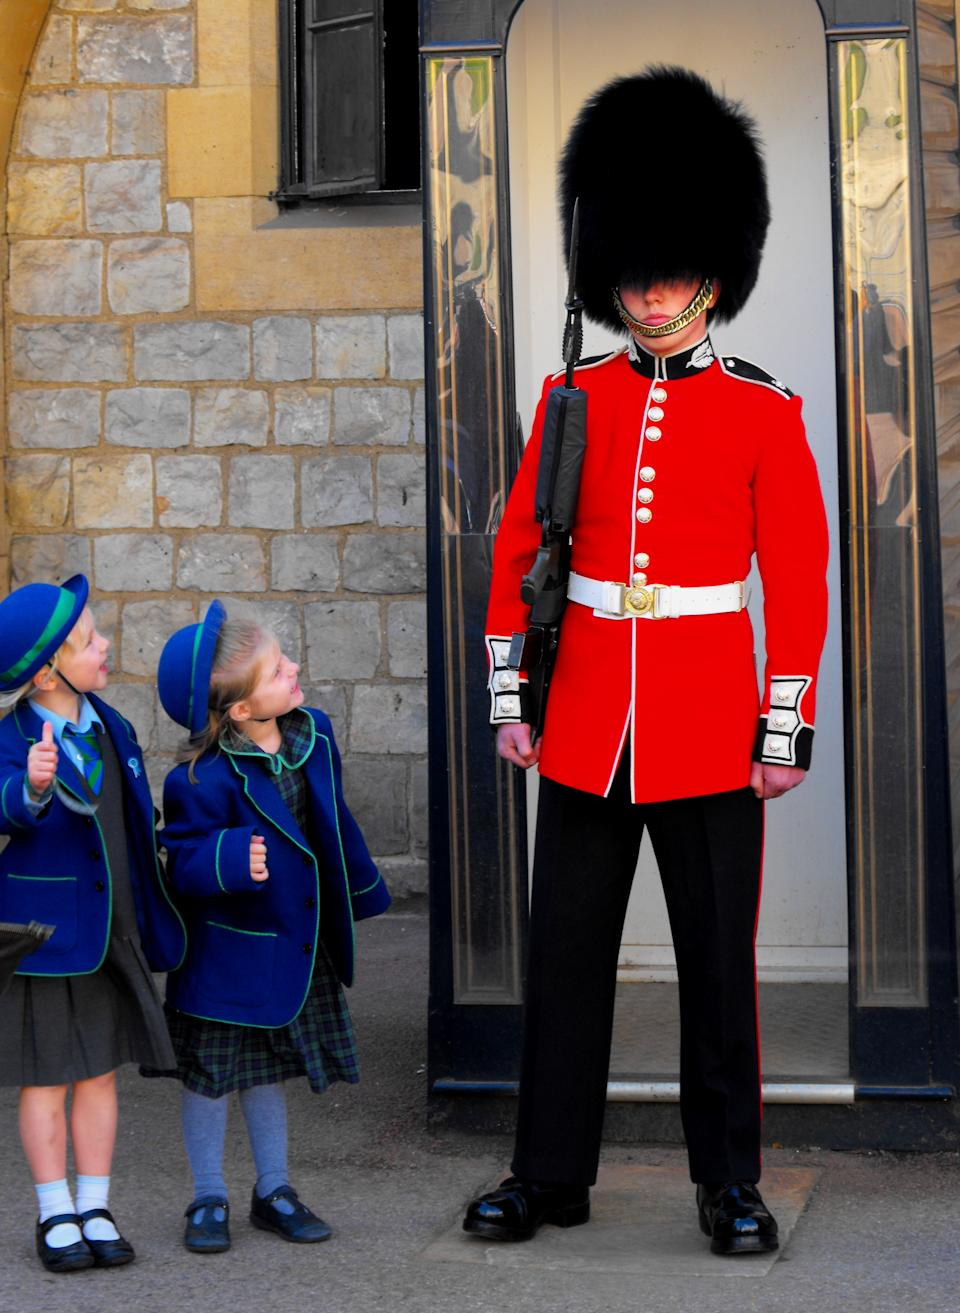 """<b>Windsor Castle Guard</b><br> I ran into a group of schoolchildren visiting Windsor Castle in early October. A few of the girls particularly enjoyed posing with the guard.<br> Photograph by <a href=""""http://ngm.nationalgeographic.com/myshot/gallery/359626"""" rel=""""nofollow noopener"""" target=""""_blank"""" data-ylk=""""slk:Robin Flynn"""" class=""""link rapid-noclick-resp"""">Robin Flynn</a>, <a href=""""http://ngm.nationalgeographic.com/myshot/"""" rel=""""nofollow noopener"""" target=""""_blank"""" data-ylk=""""slk:My Shot"""" class=""""link rapid-noclick-resp"""">My Shot</a>"""